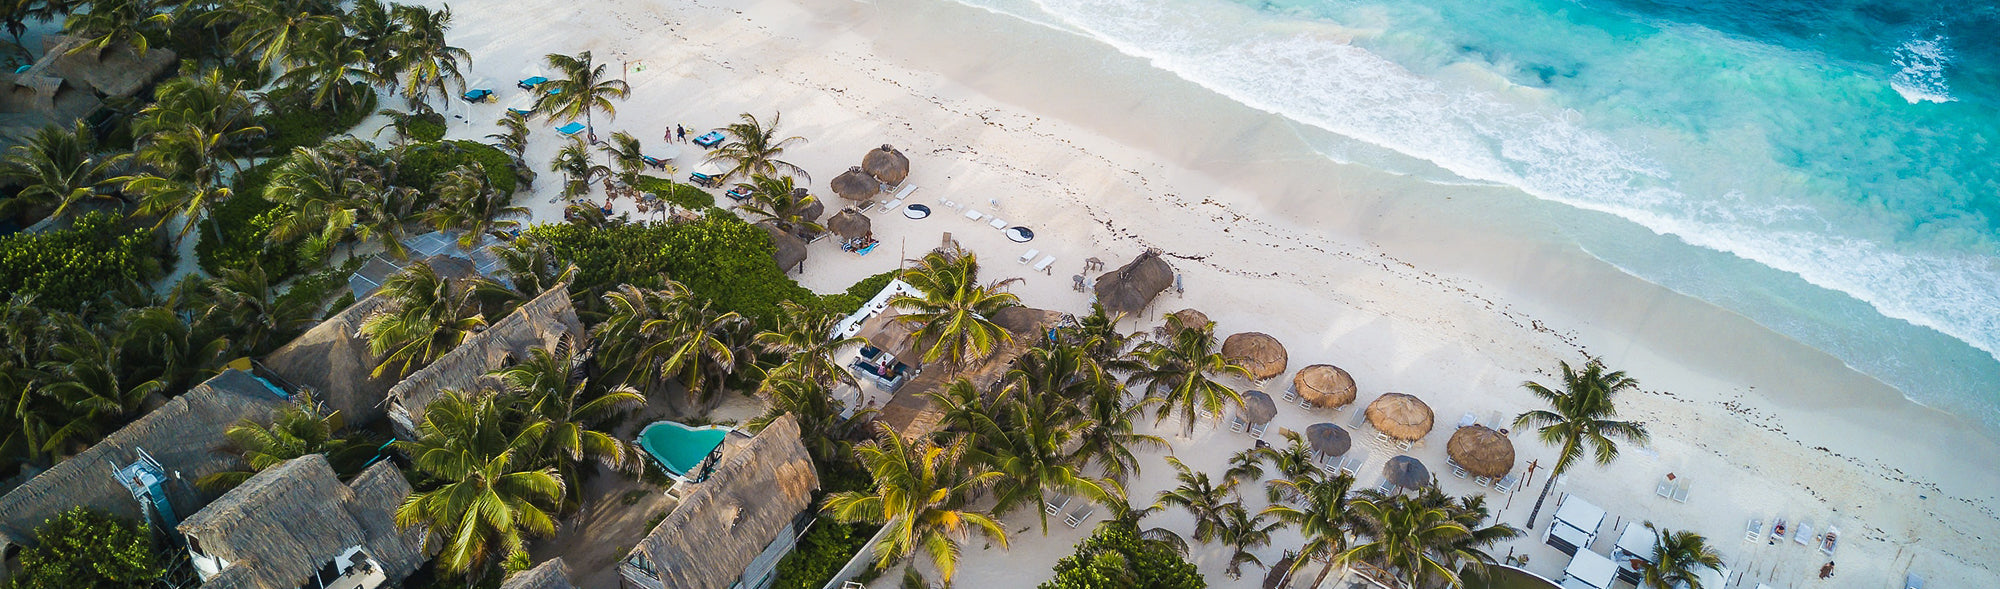 Why You Should Visit the Yucatán Peninsula